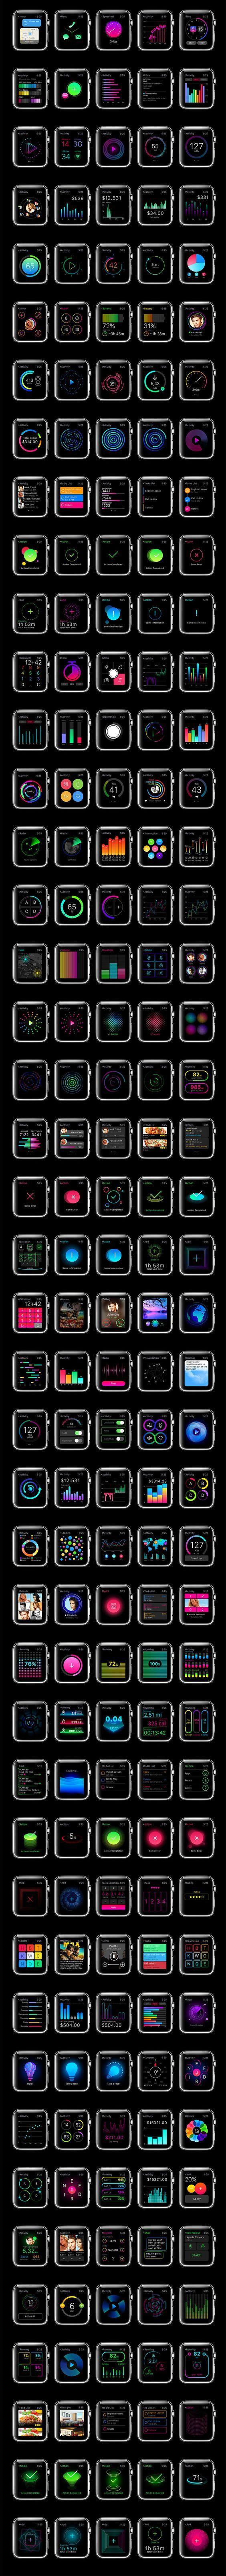 Apple Watch UI Kit | + Enahnce your #MacBook / #iMac experience , visit: http://pdsp.us/macbookcleanse: